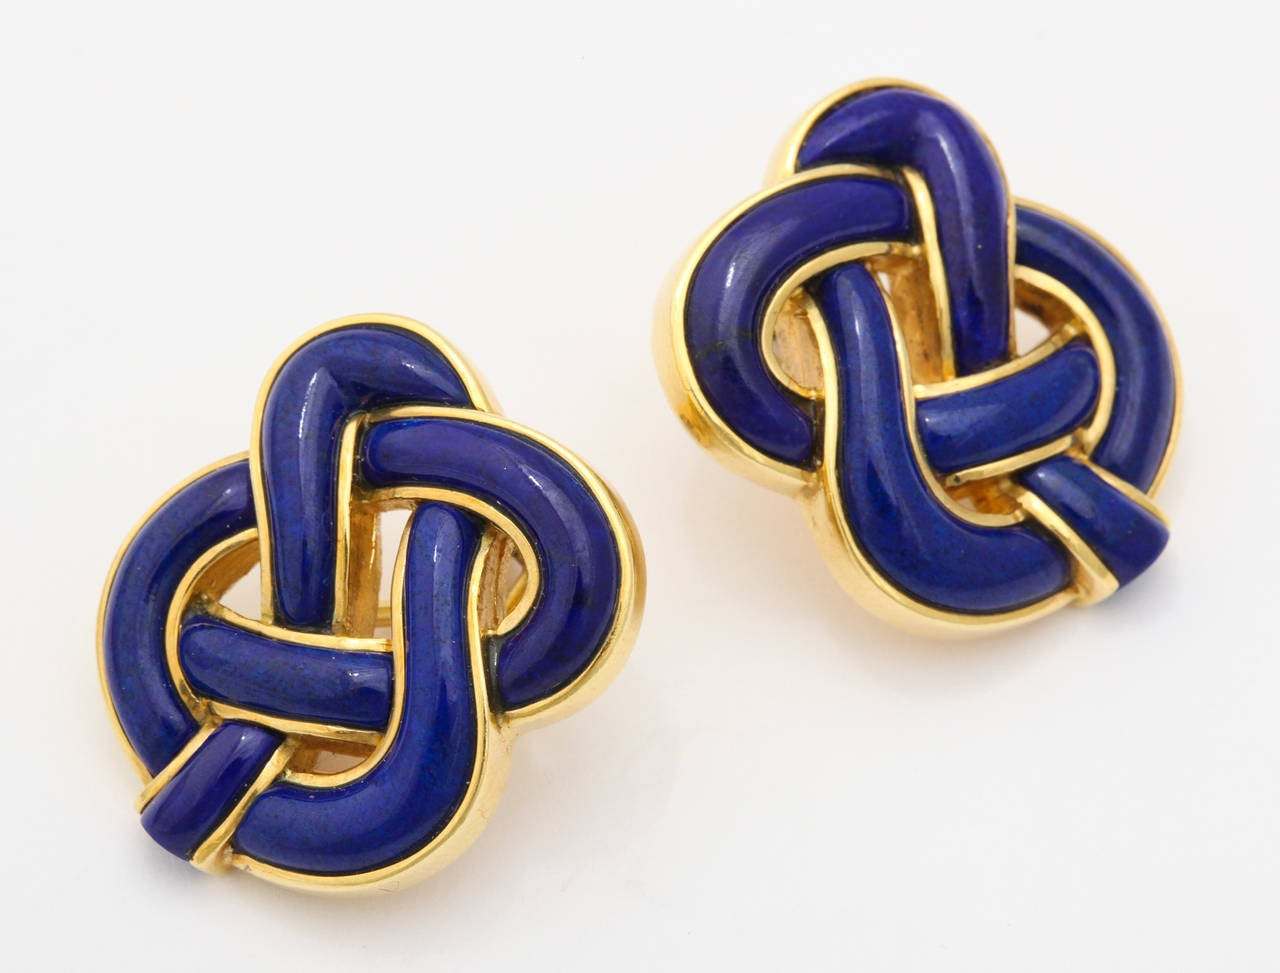 1989 Tiffany & Co. Angela Cummings Lapis Gold Braided Knot Ear Clips 6